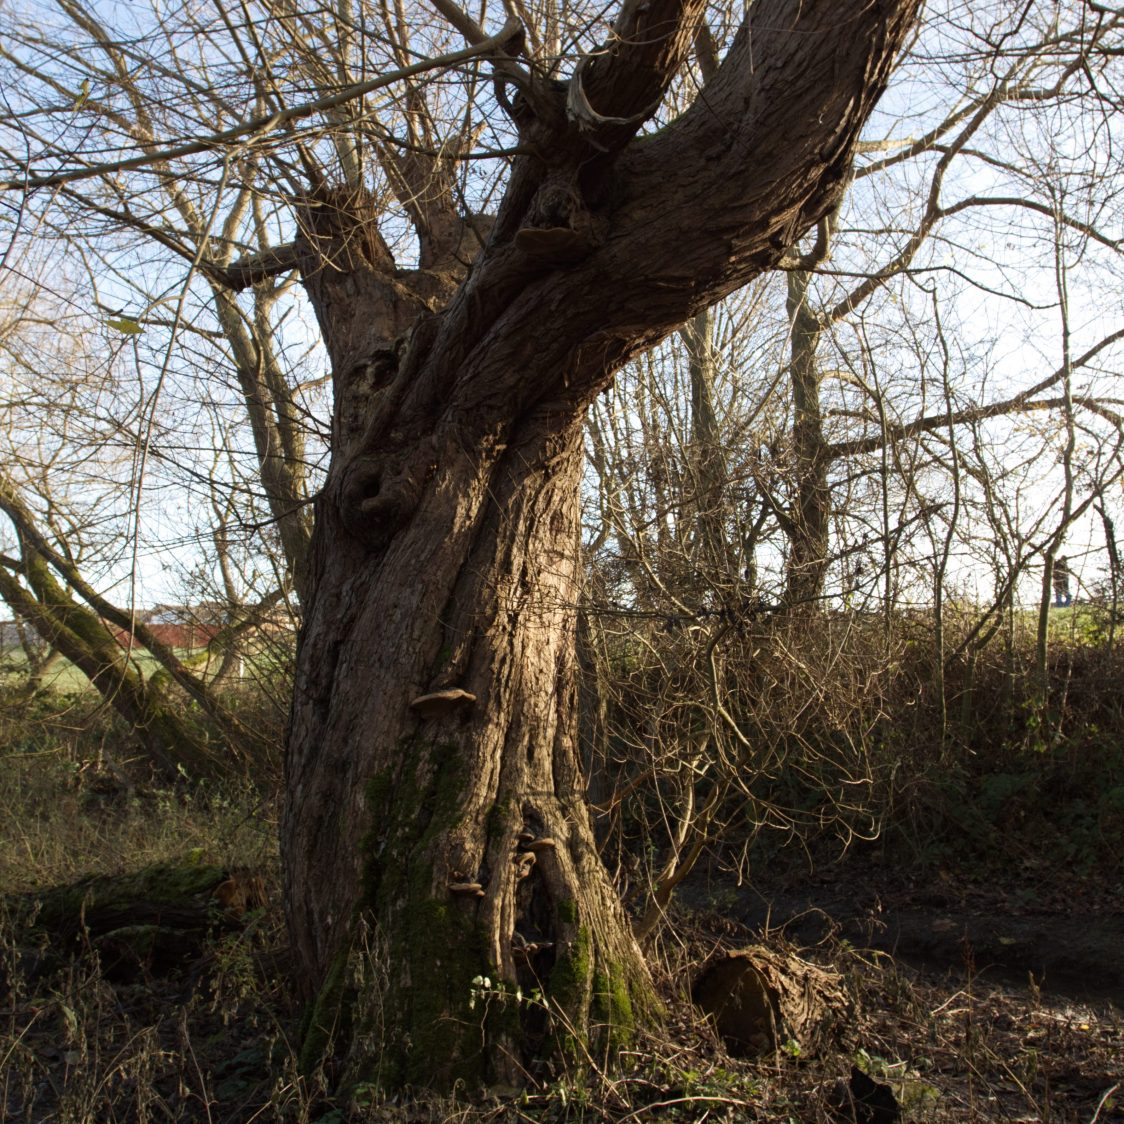 A great old willow grows twisting out of the earth.